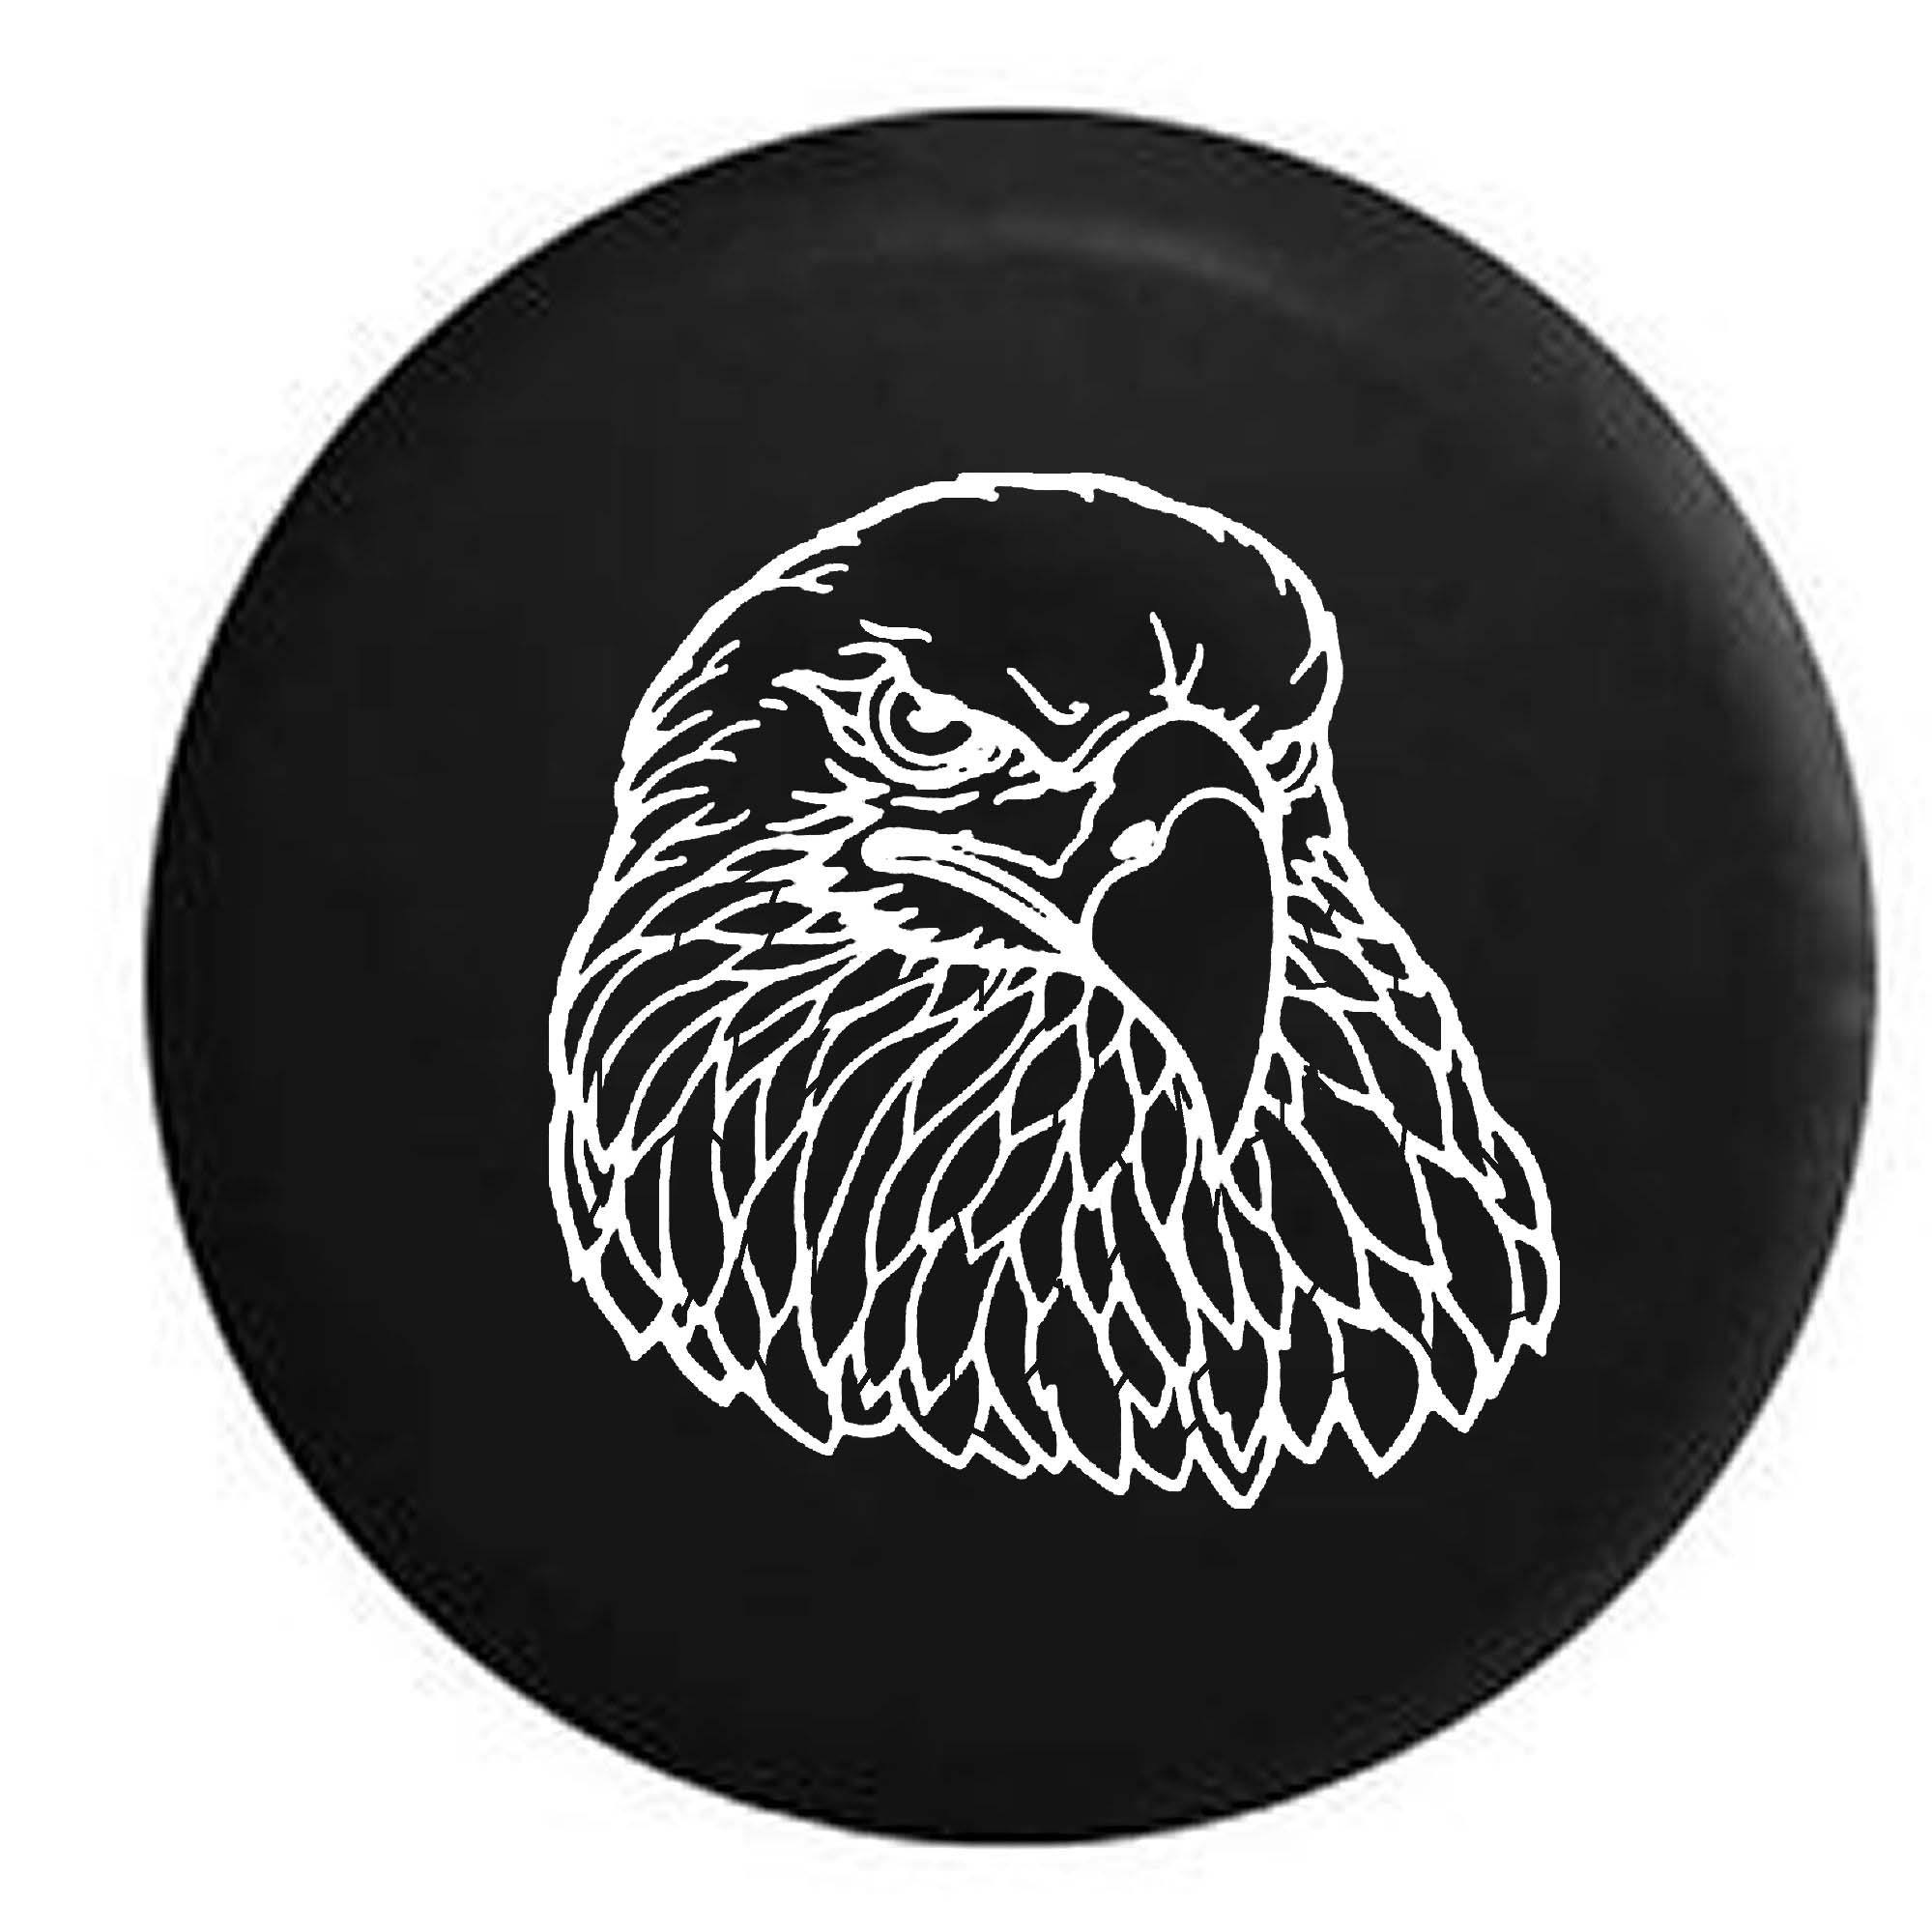 American Eagle Patriotic Spare Tire Cover Vinyl Black 33 in